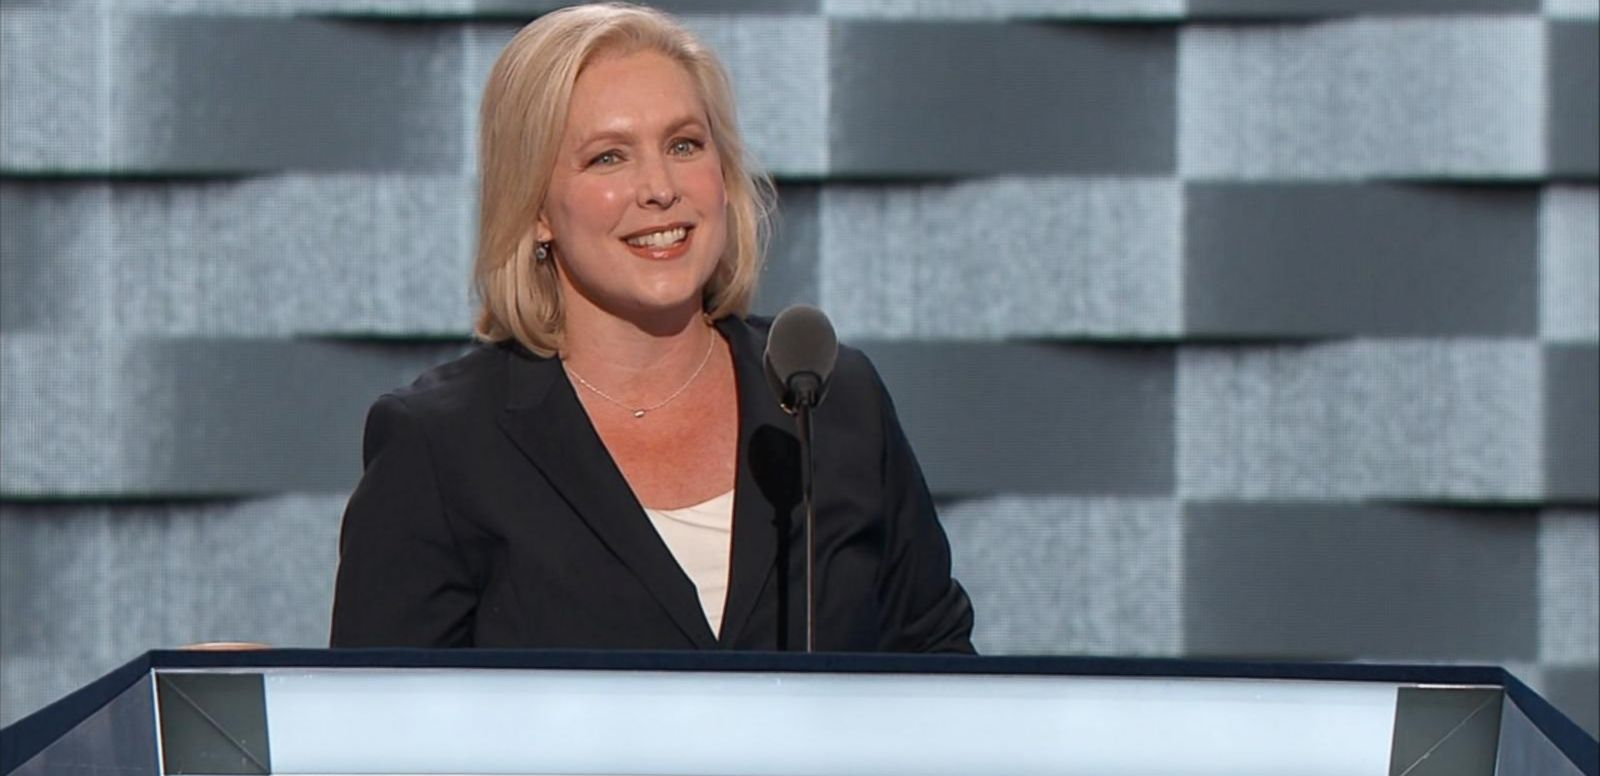 VIDEO: Kirsten Gillibrand: 'Hillary Clinton Gets It'